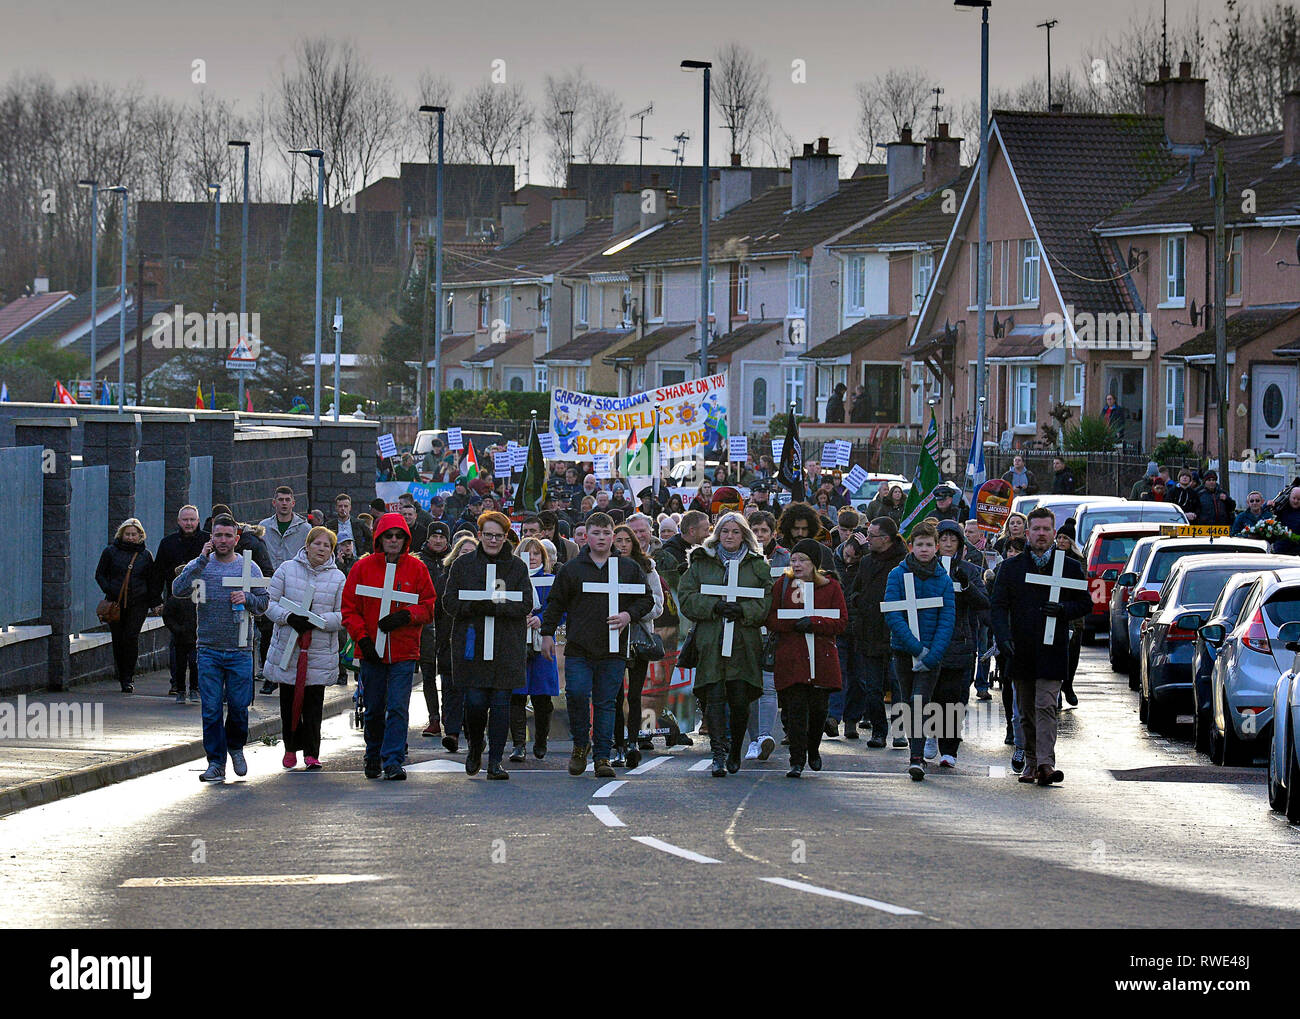 Relatives of civilians killed on Bloody Sunday 1972 carry white crosses at the 47th Bloody Sunday commemoration march in Londonderry on 27 January. Cr - Stock Image